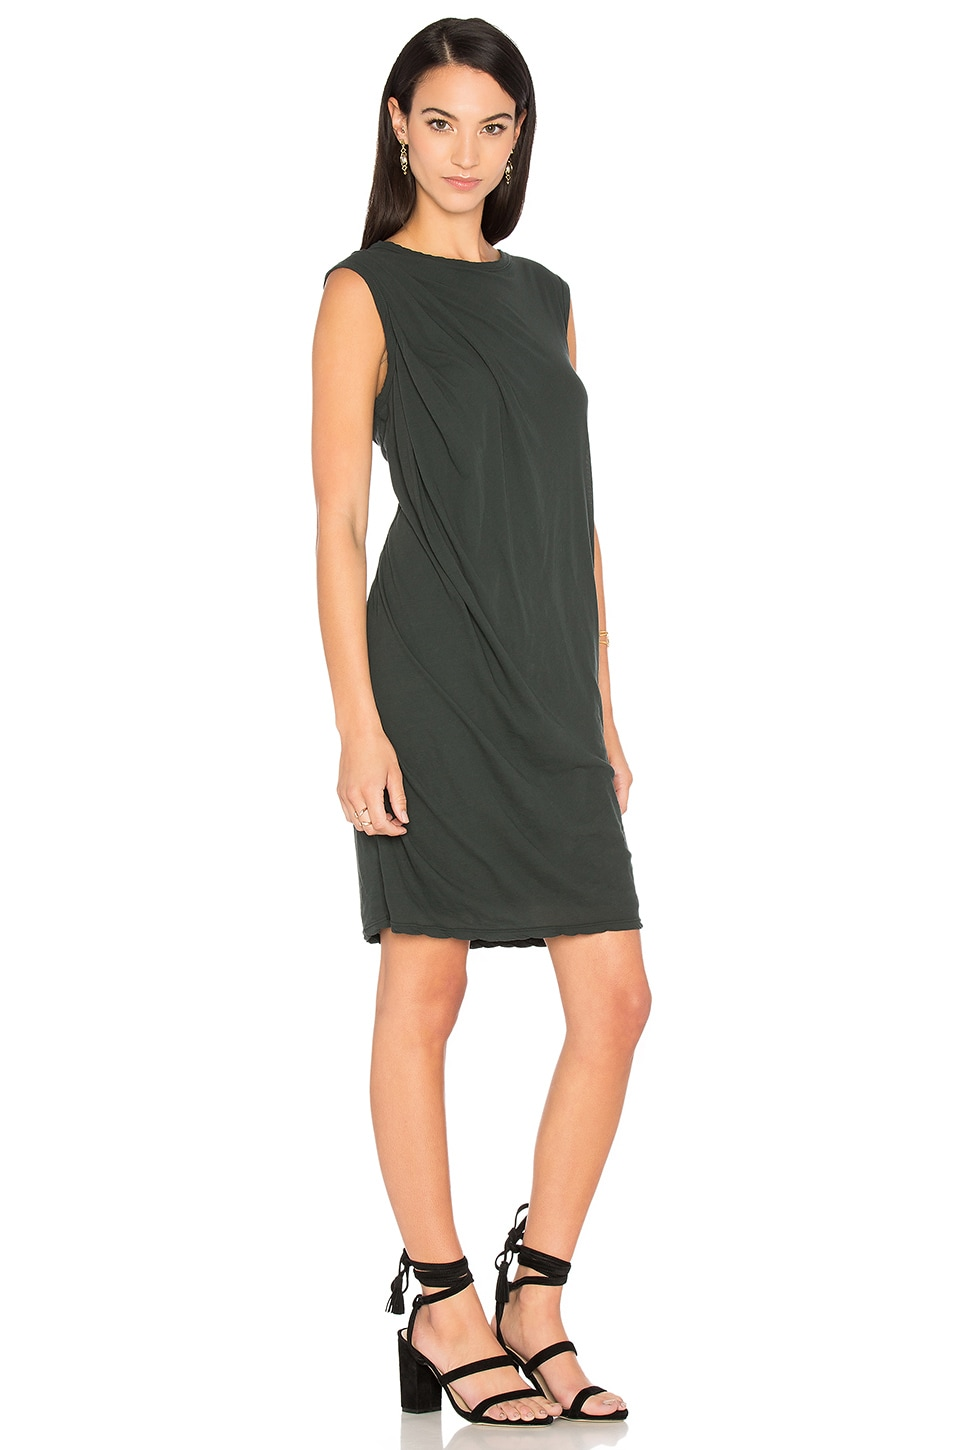 Tucked Shift Dress by James Perse